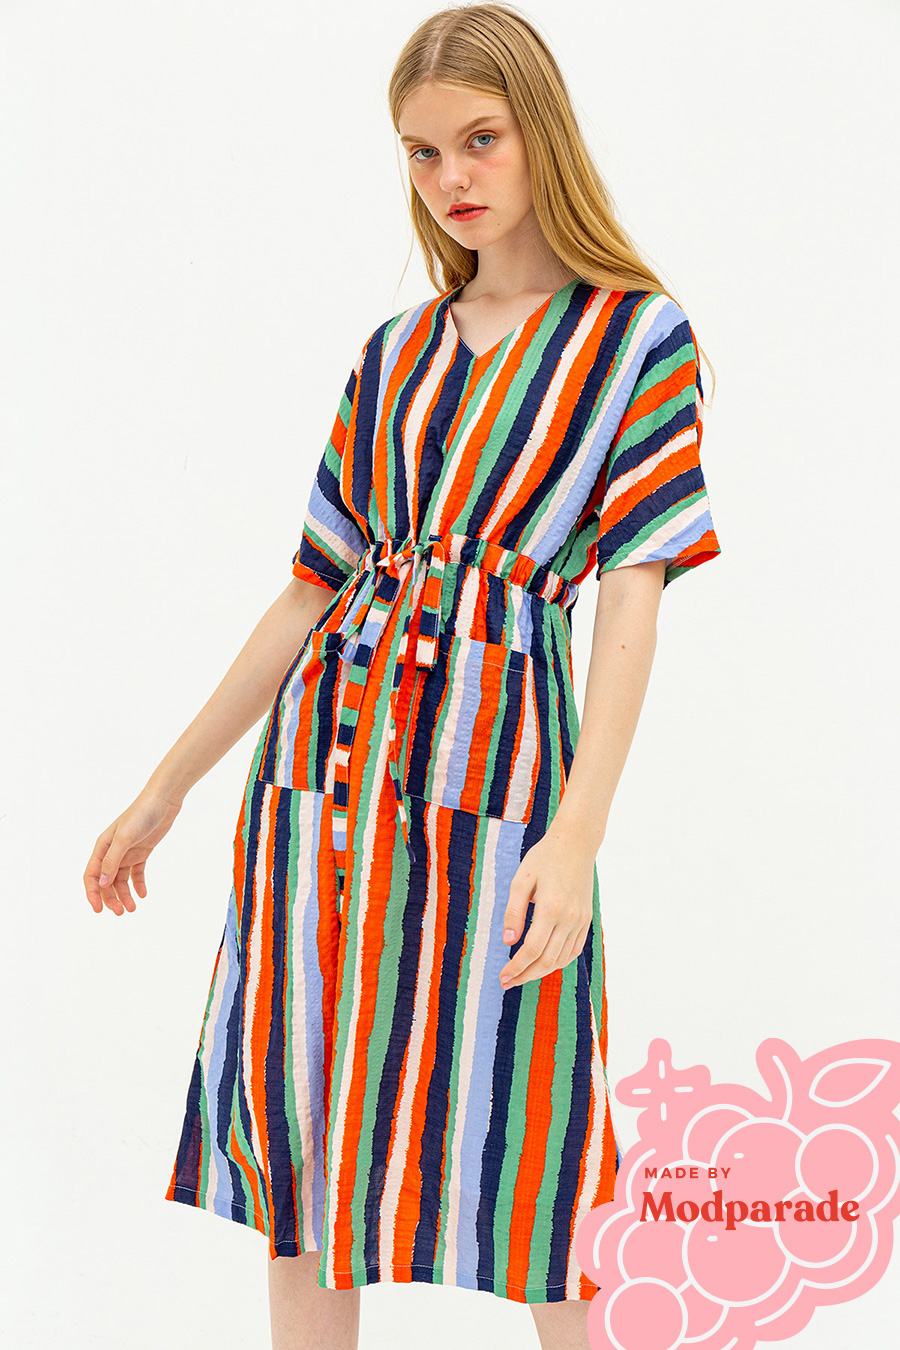 SIMONE DRESS - SUNSET STRIPE [BY MODPARADE]